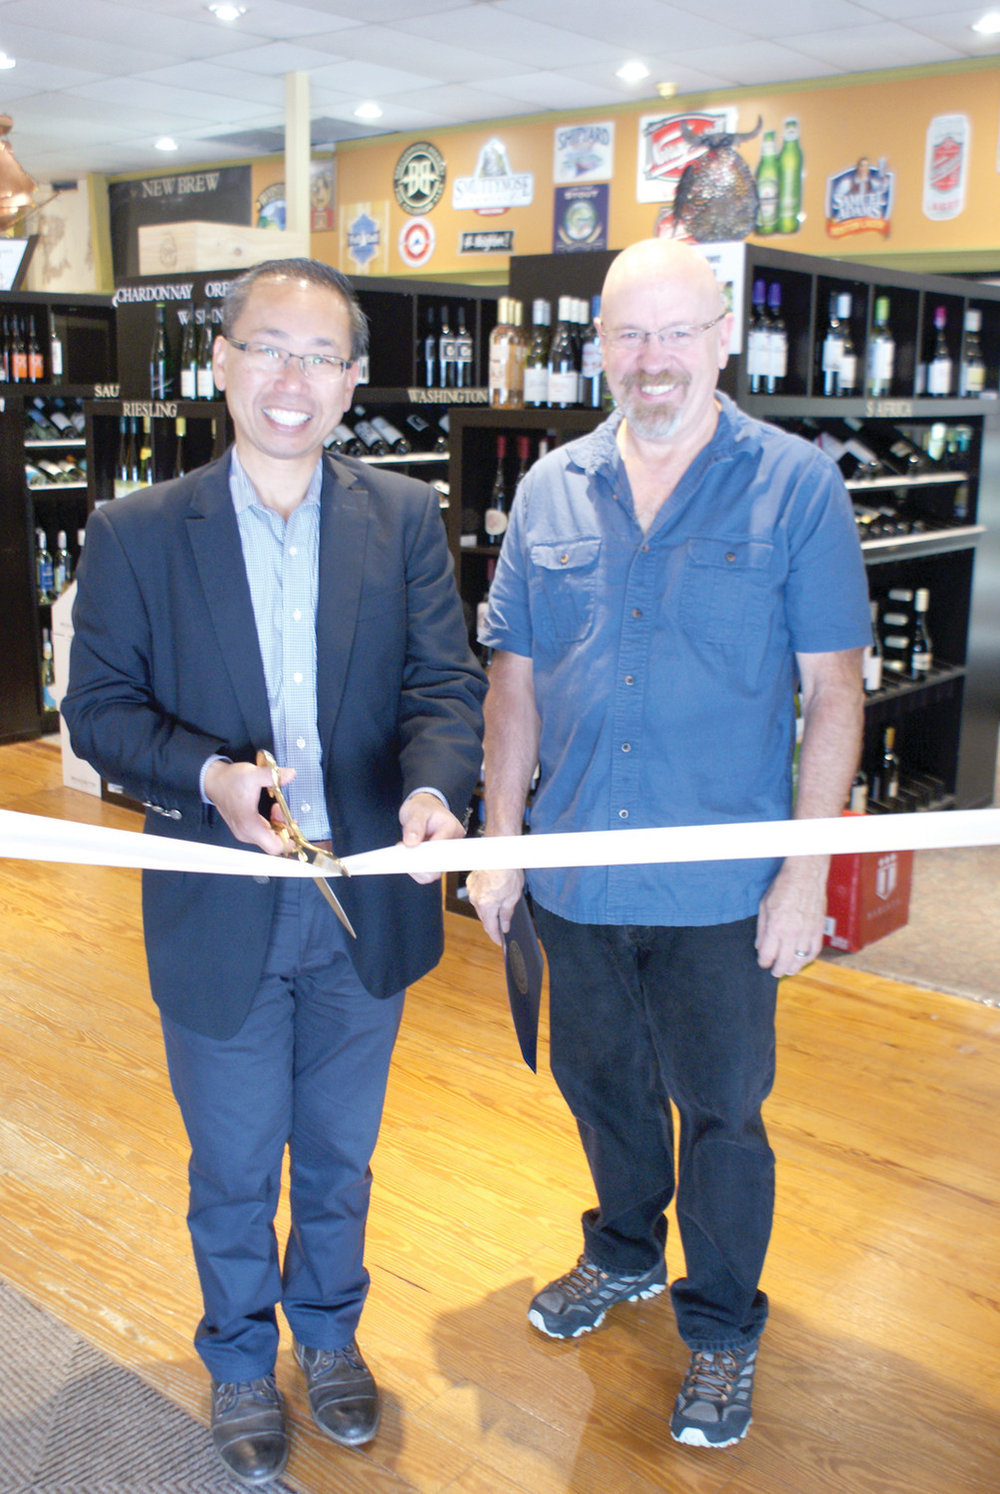 - Congratulations to the new owner of the store Al Sinclair. Since the ownership change in April 2018 the store has never looked better. A ribbon cutting ceremony was held at Cork & Brew & Spirits Too on July 27. Mayor Allan Fung welcomed the new owner to Cranston. Sinclair has kept many of the traditions from the former owners such as wine tastings and craft beer tasting but has worked hard to provide the best experience to old and new customers of the store by bringing in the best products at the best pricing.